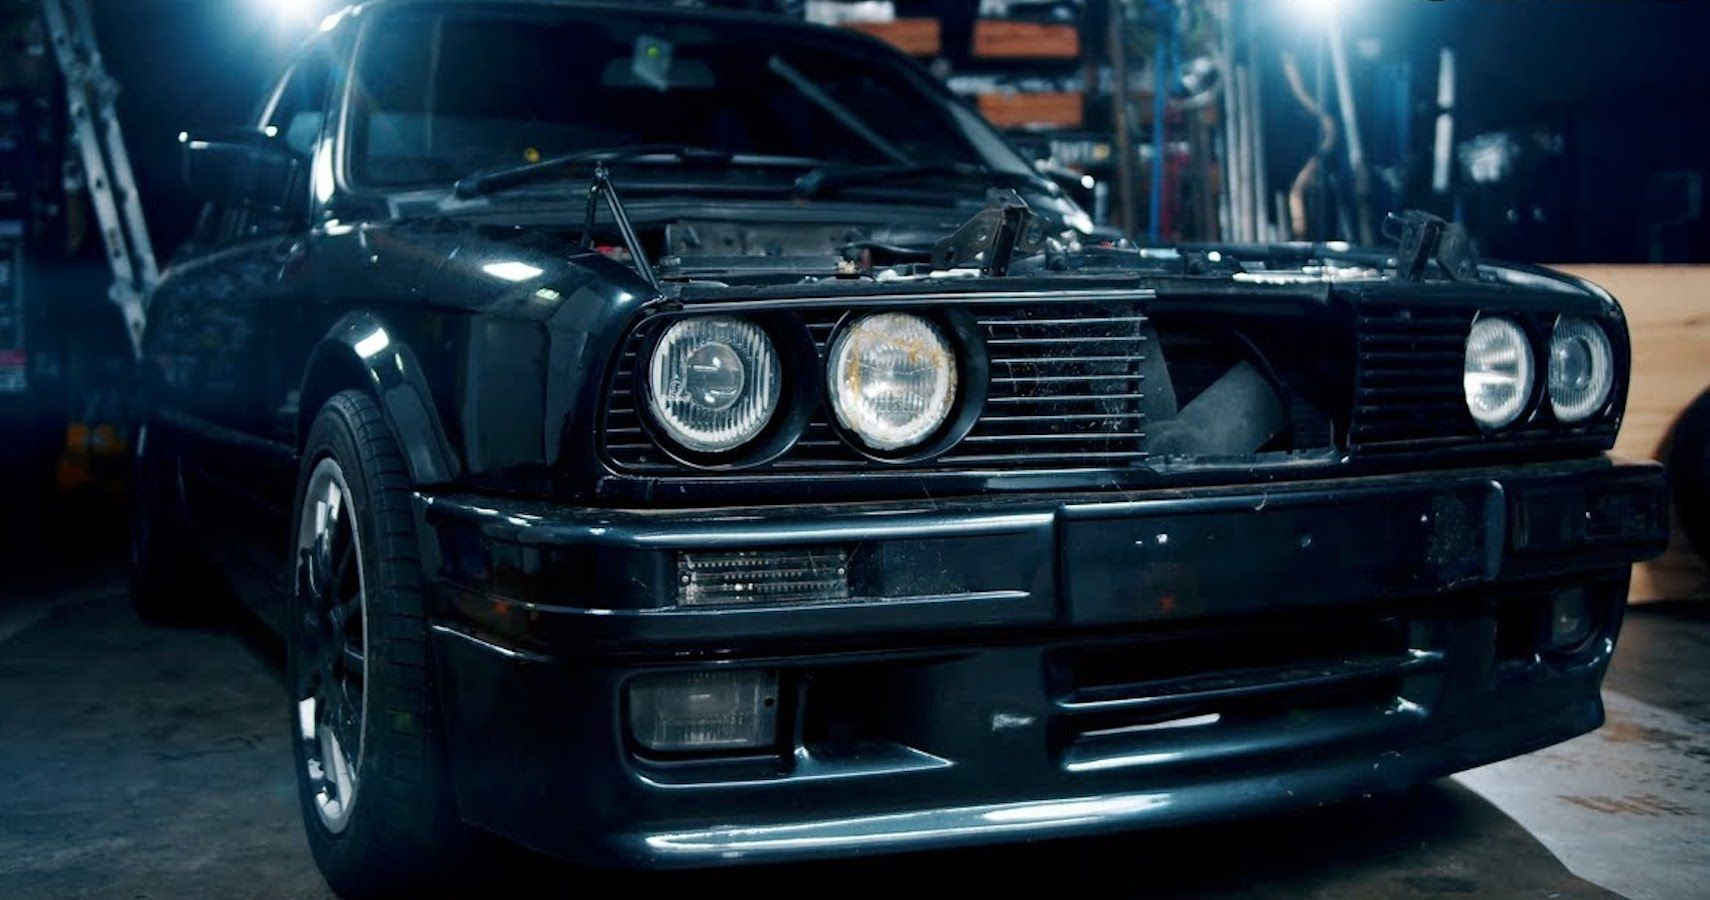 Check Out This Bmw E30 Build Two Buddies Are Turning Into A Powerful Stealthy Sleeper